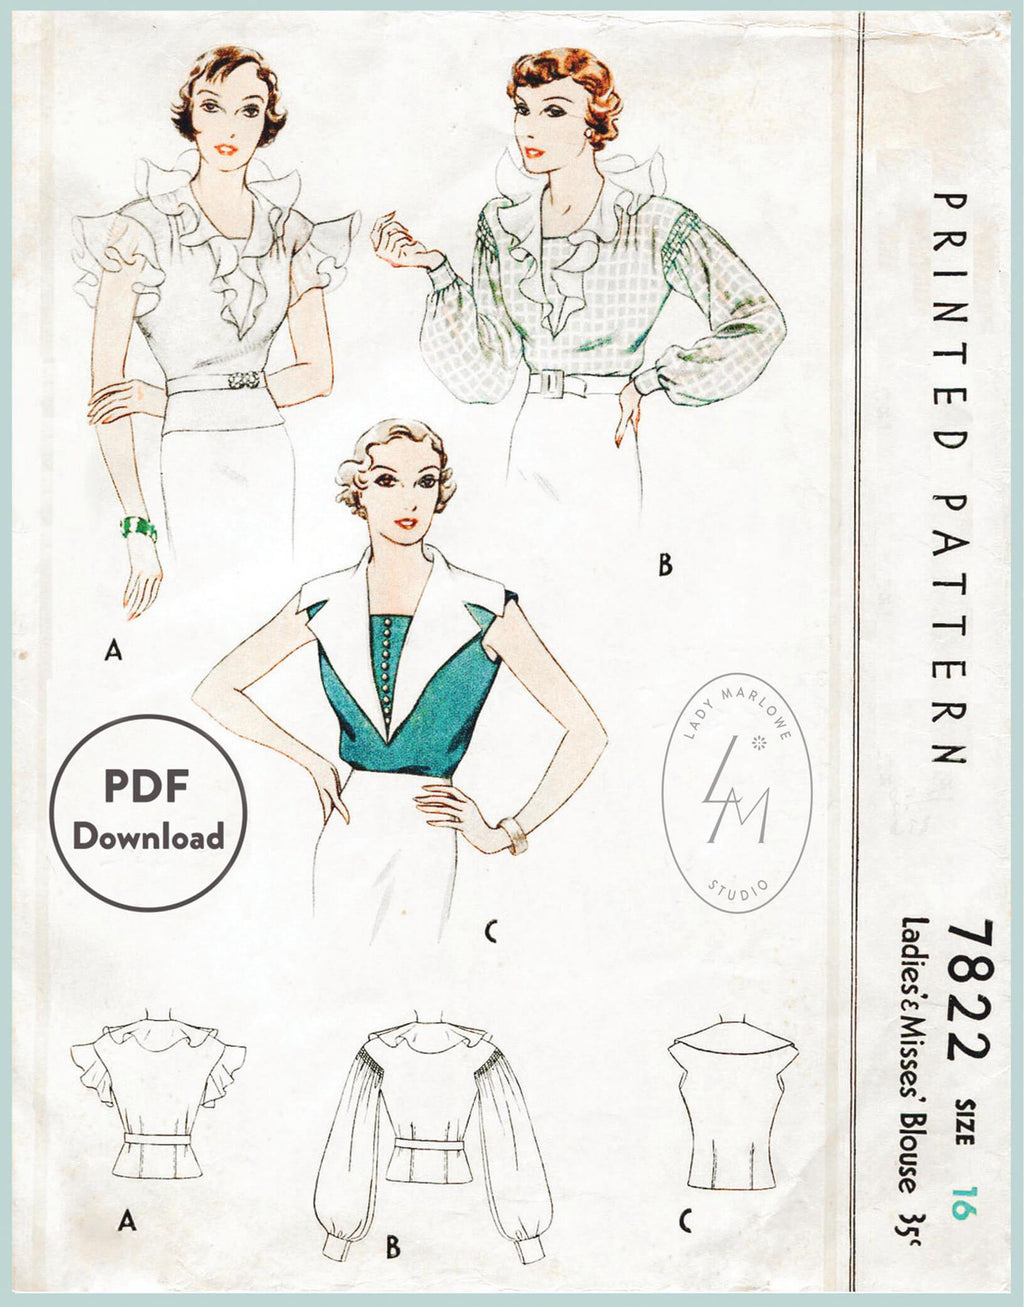 McCall 7822 1930svintage sewing pattern 1930 30s blouse tops PDF digital download